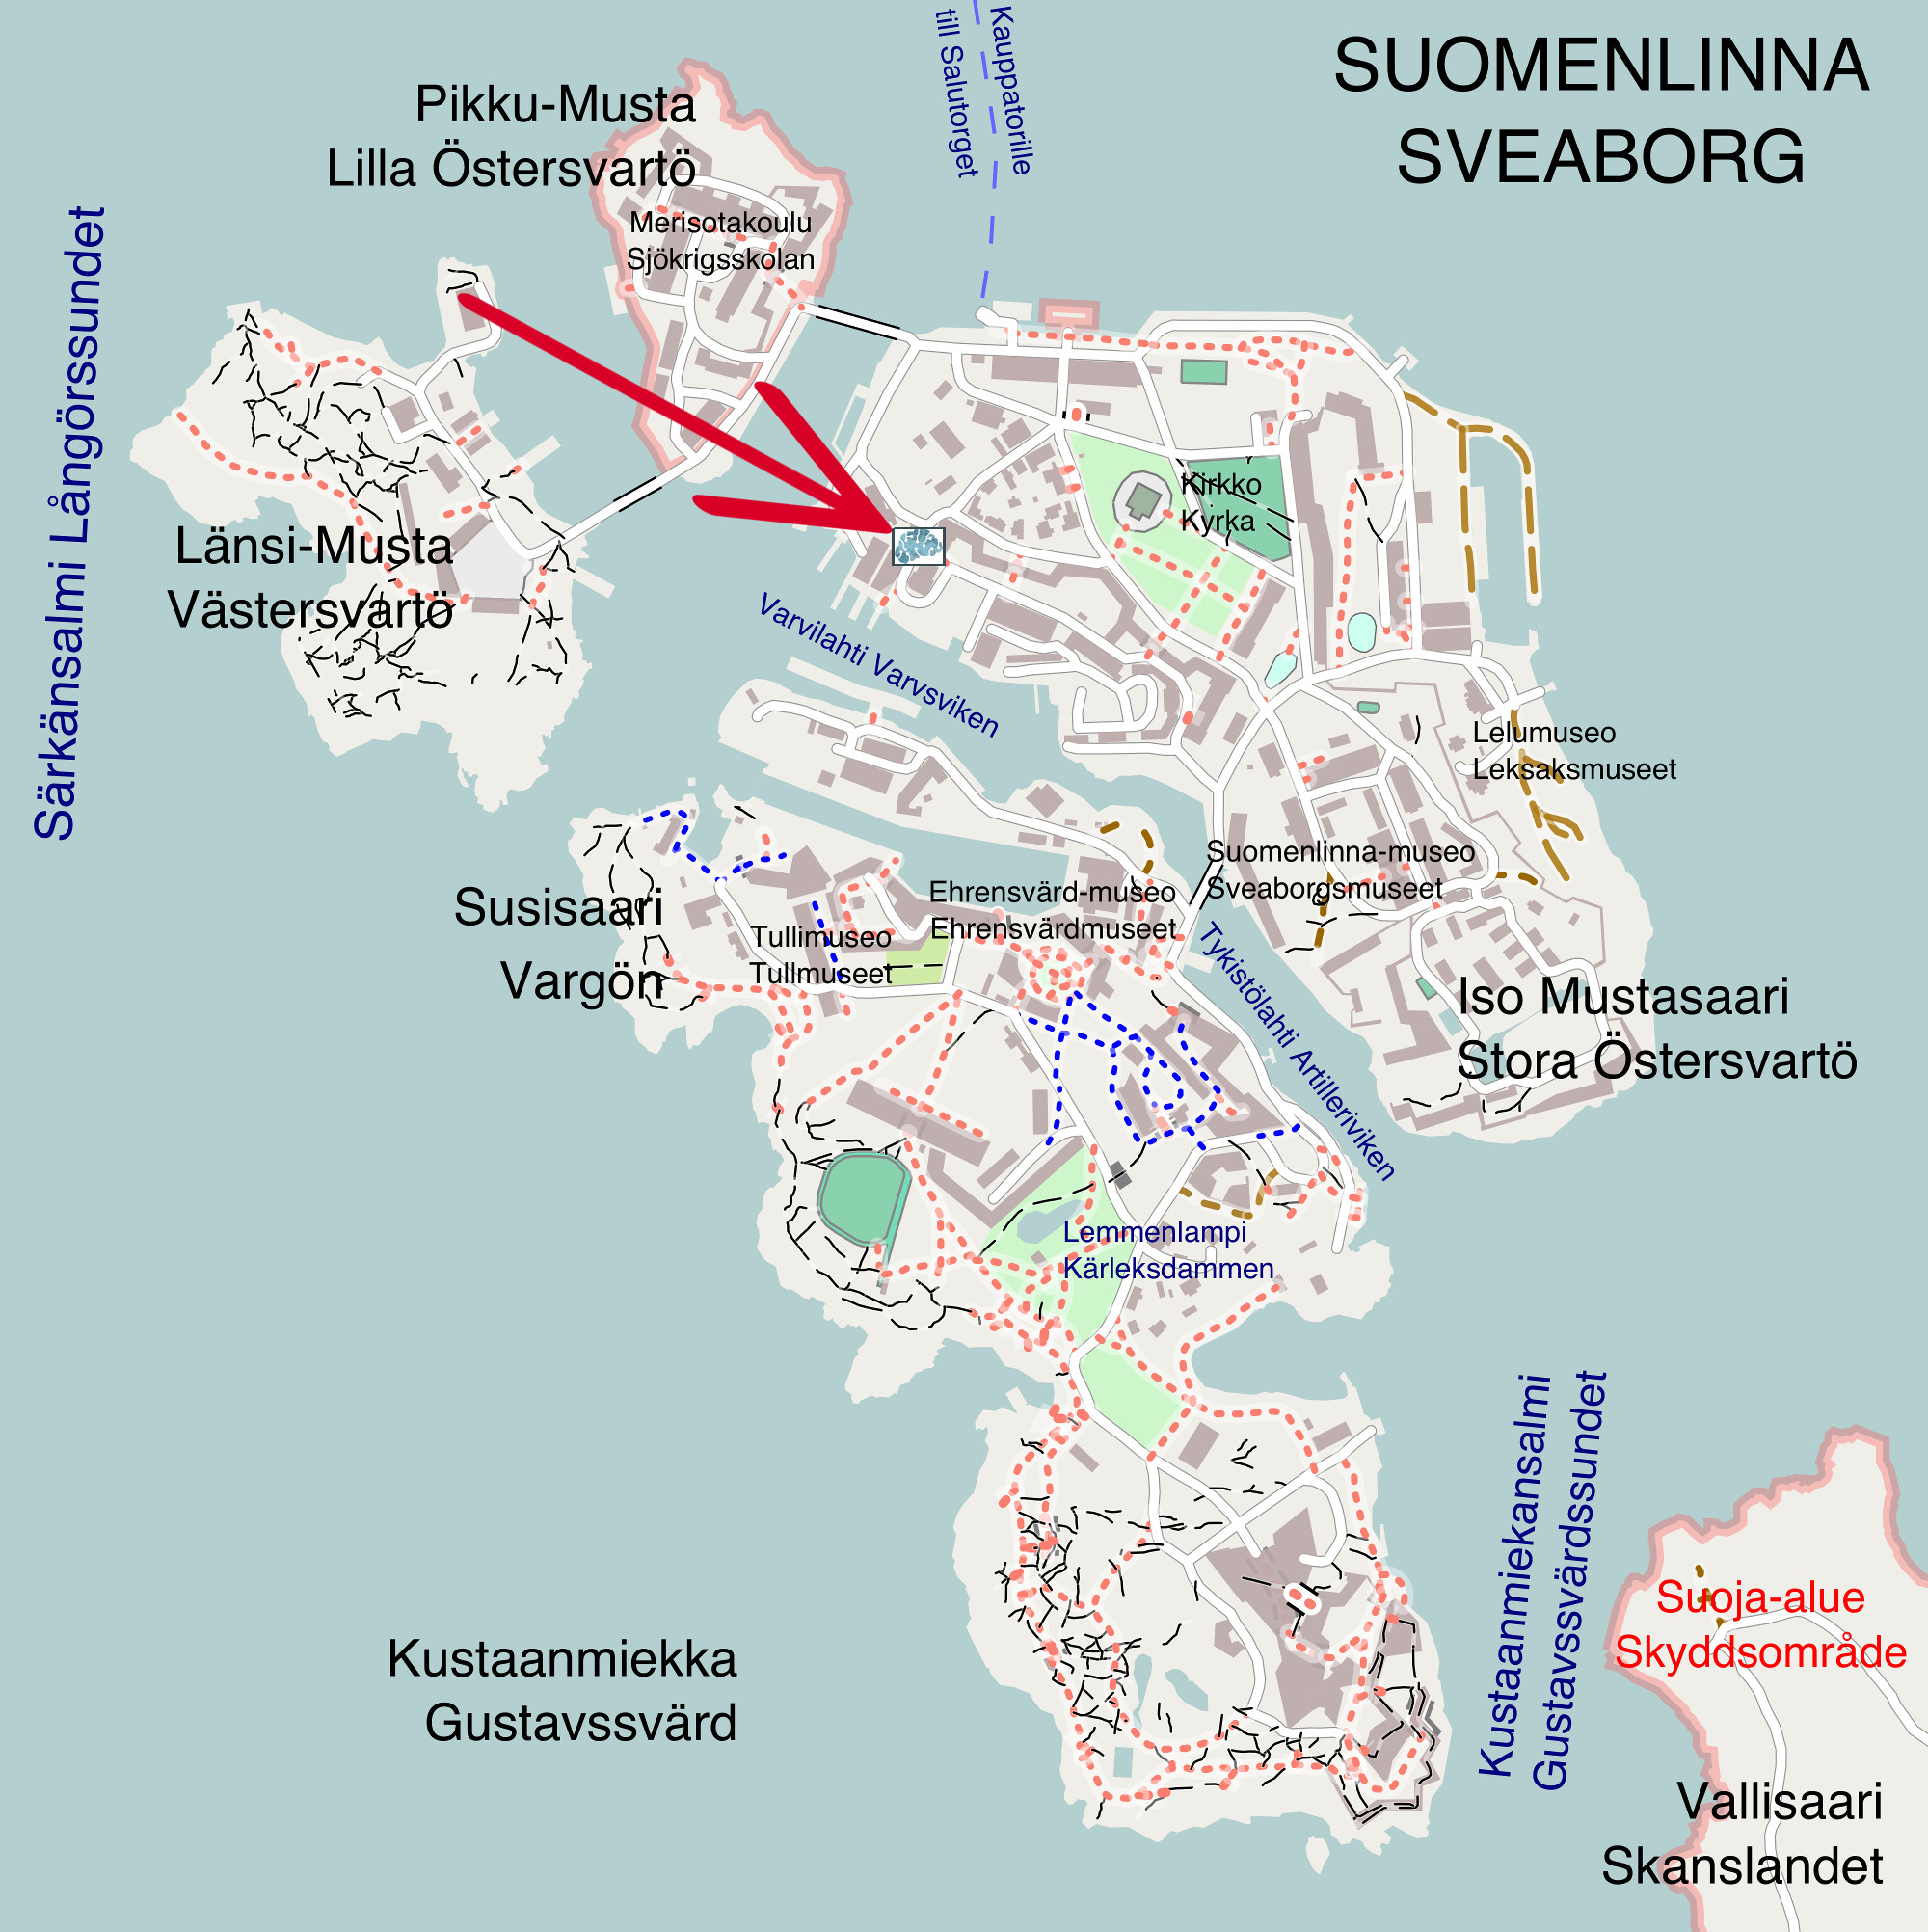 Map of Suomenlinna